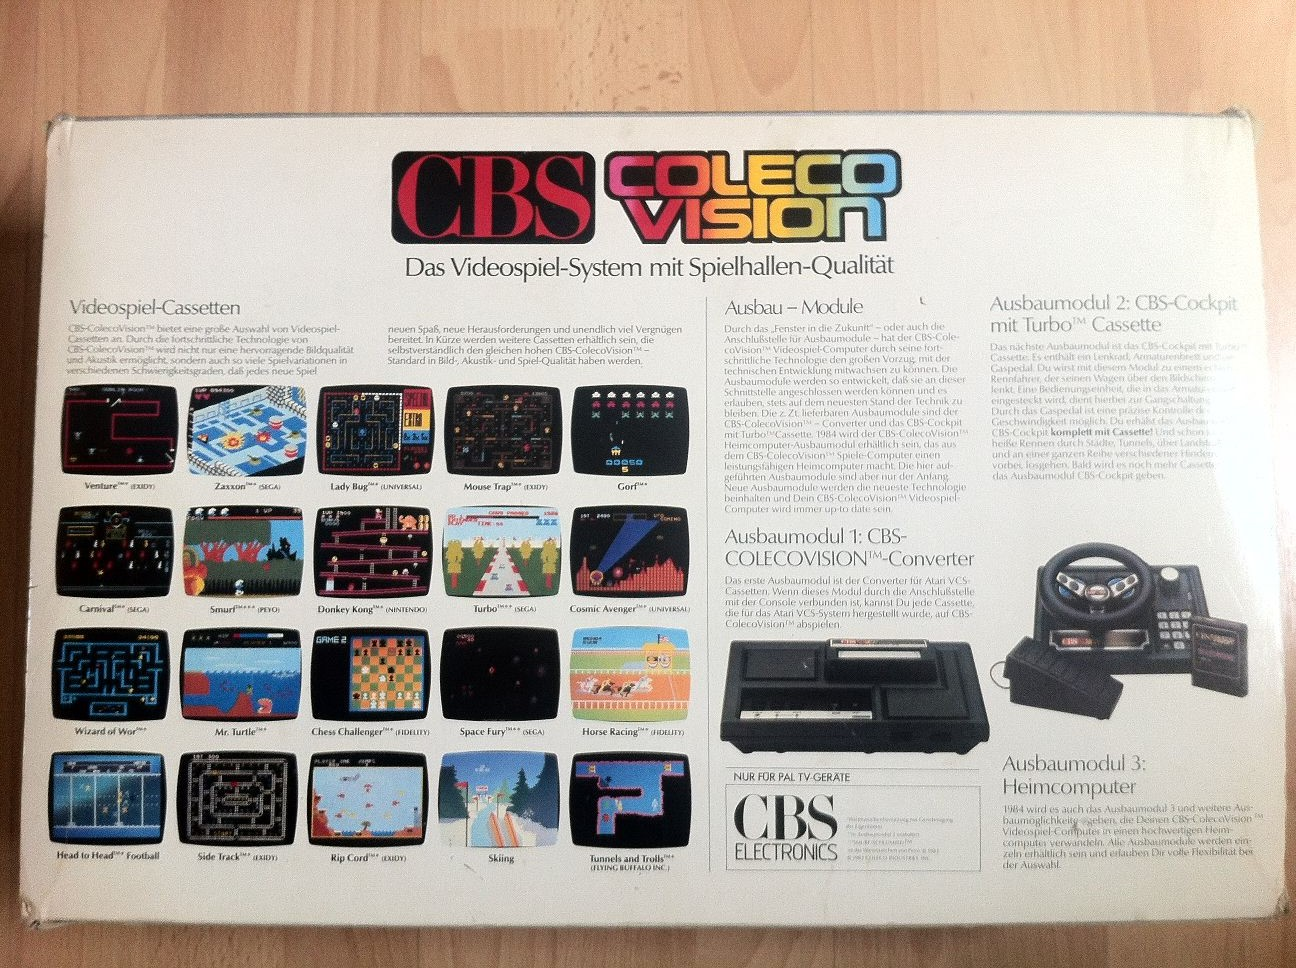 images/colecovision/image002.jpg